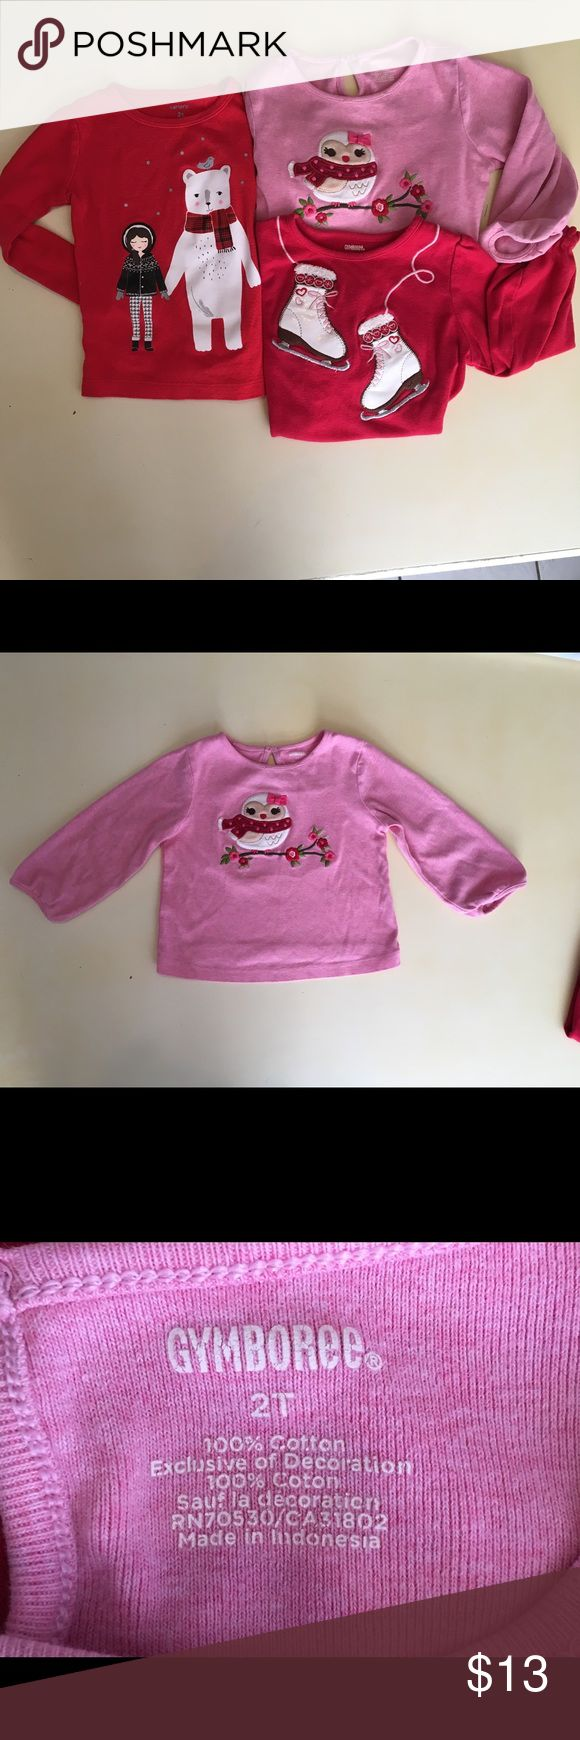 Long Sleeve Cotton Tops Three really cute long sleeved cotton shirts Size 2T:  Gymboree: Ice Skates & Owl shirts.  Children's Place: Polar Bear shirt.                                          The Gymboree tops are heavier weighted cotton than screen-printed Children's Place long-sleeves tee which is of average weight. All 3 great used condition - no stains or markings. Gymboree Shirts & Tops